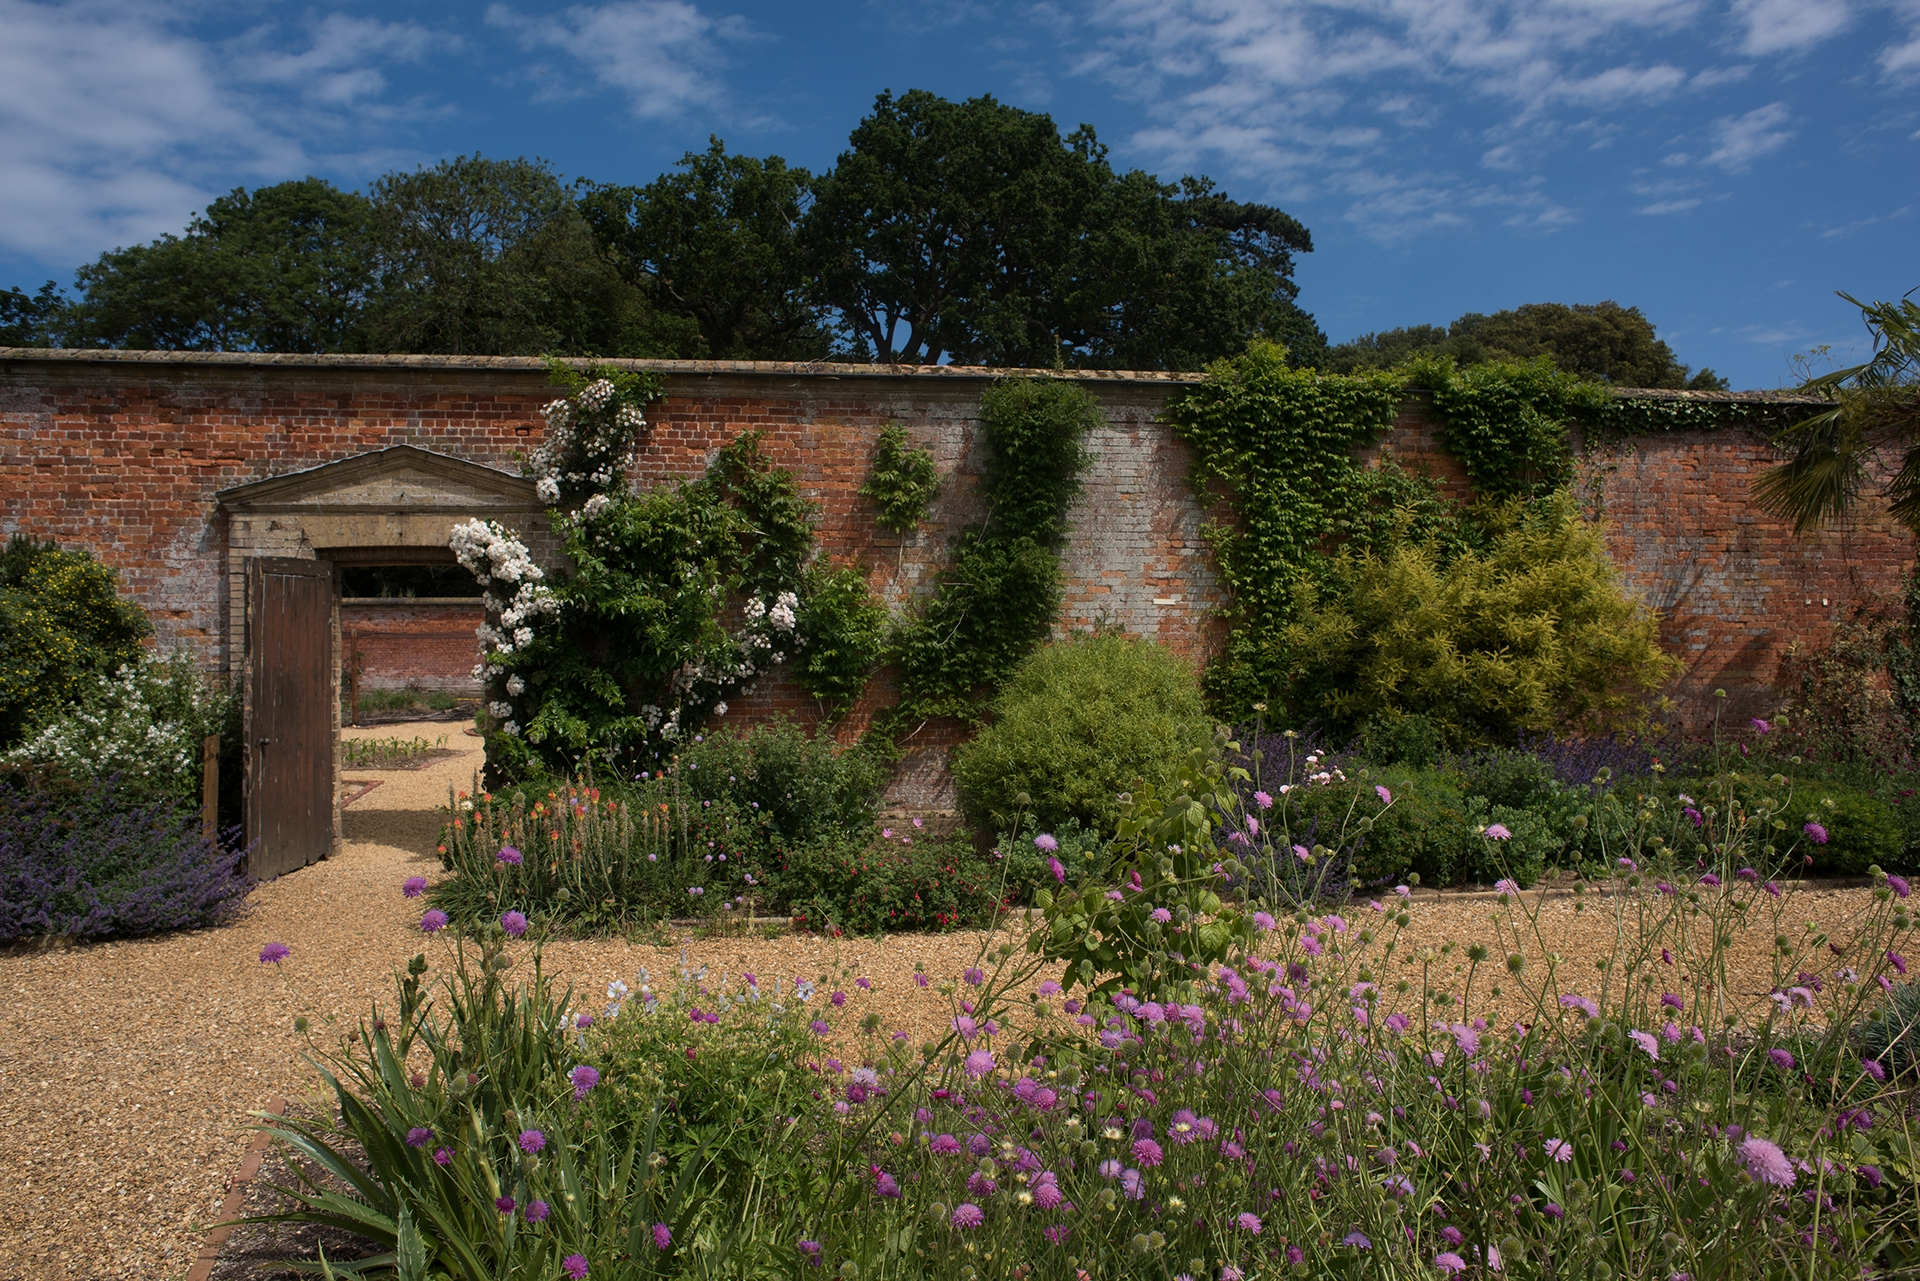 The-Walled-Garden-at-Holkham-2